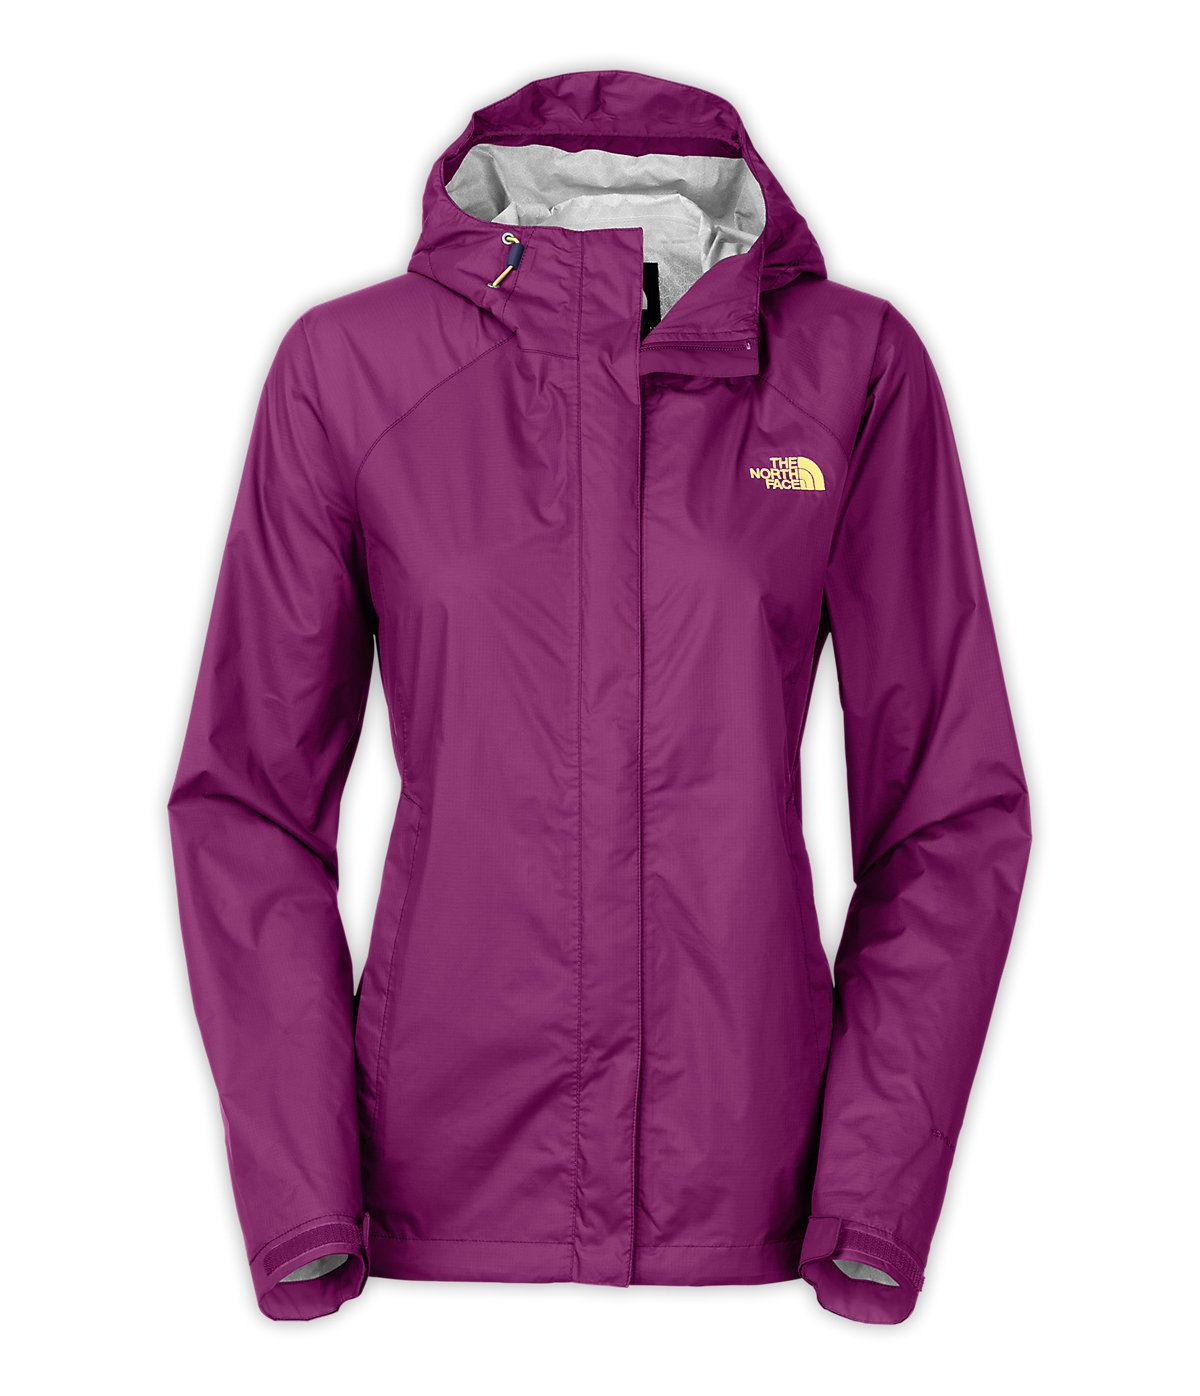 The North Face Women's Venture 2 Jacket (With images ...